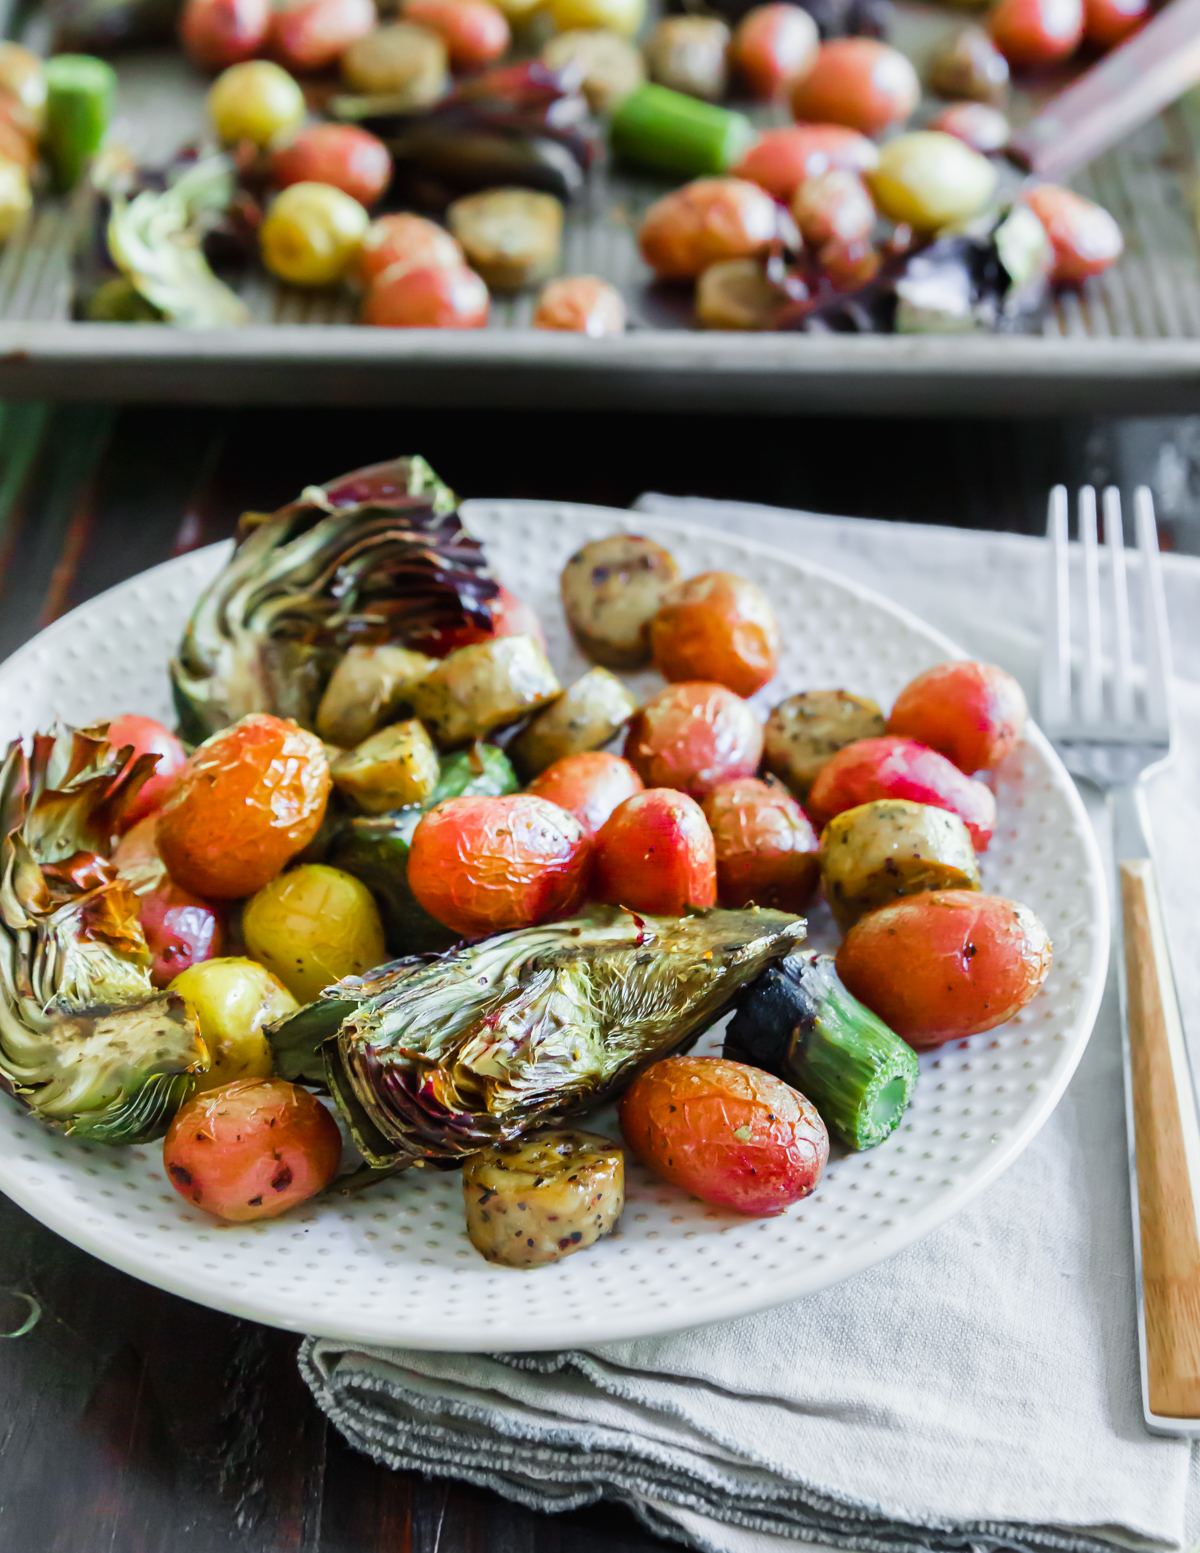 Sheet pan sausage and vegetables is a complete meal with tender purple roasted artichokes, baby potatoes and sliced chicken sausage.